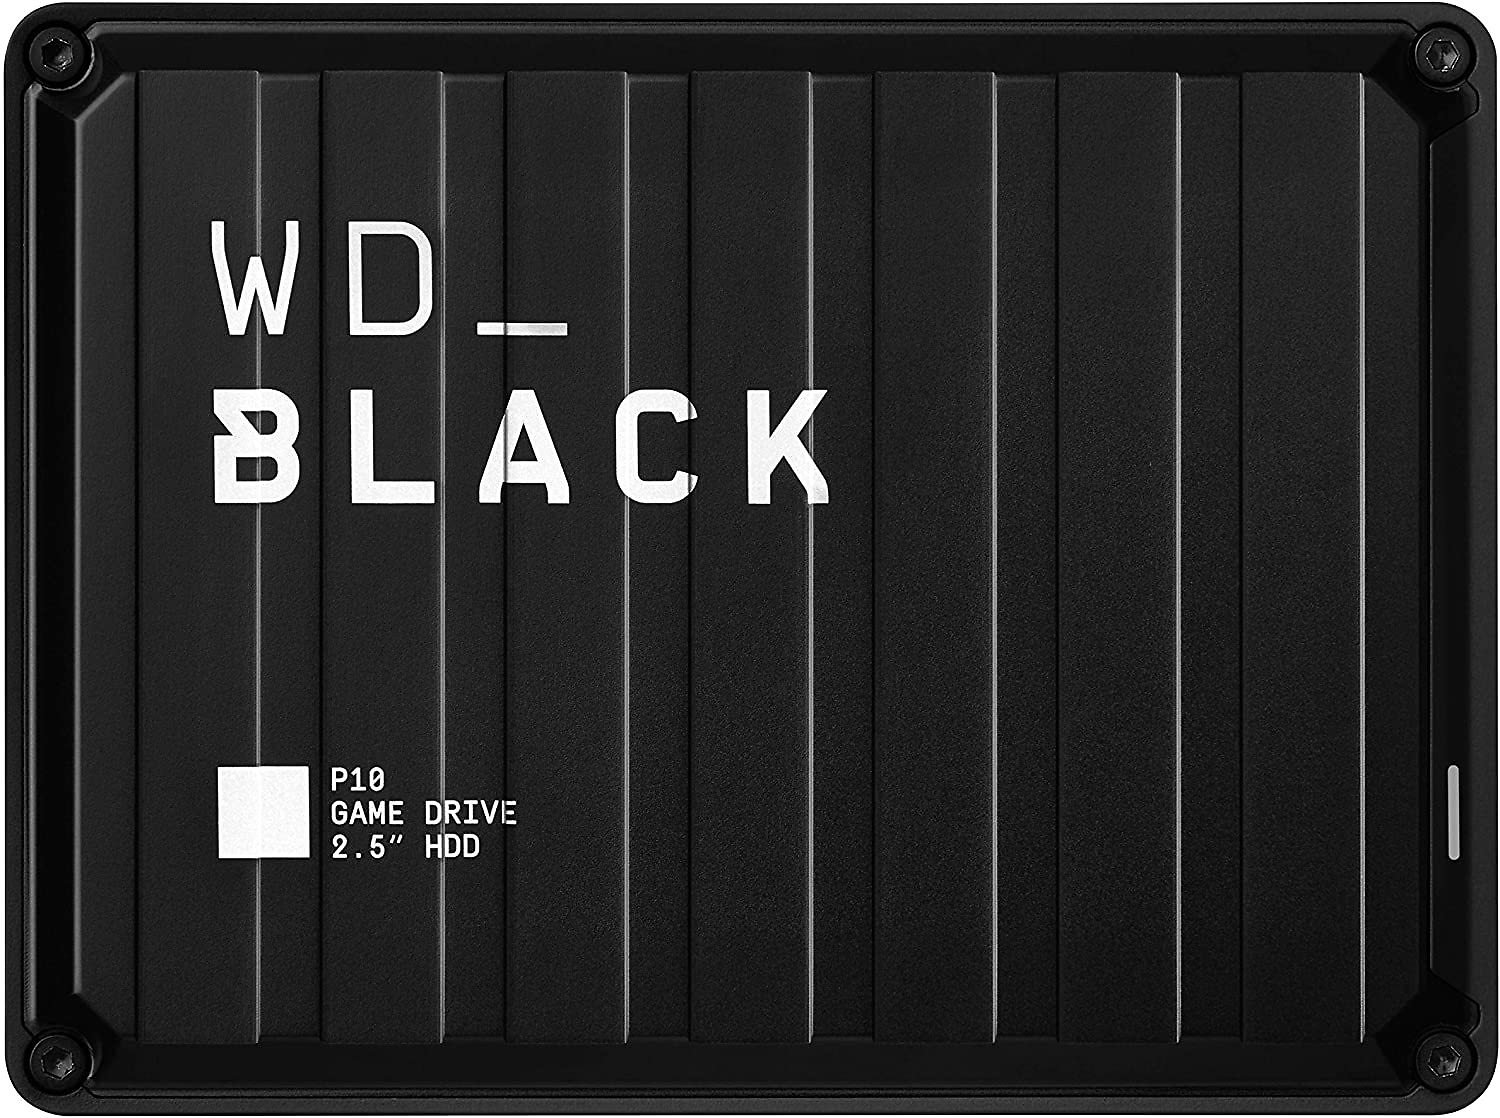 WD_Black 4TB P10 Game Drive, Portable External Hard Drive Compatible with Playstation, Xbox, PC, & Mac - WDBA3A0040BBK-WESN